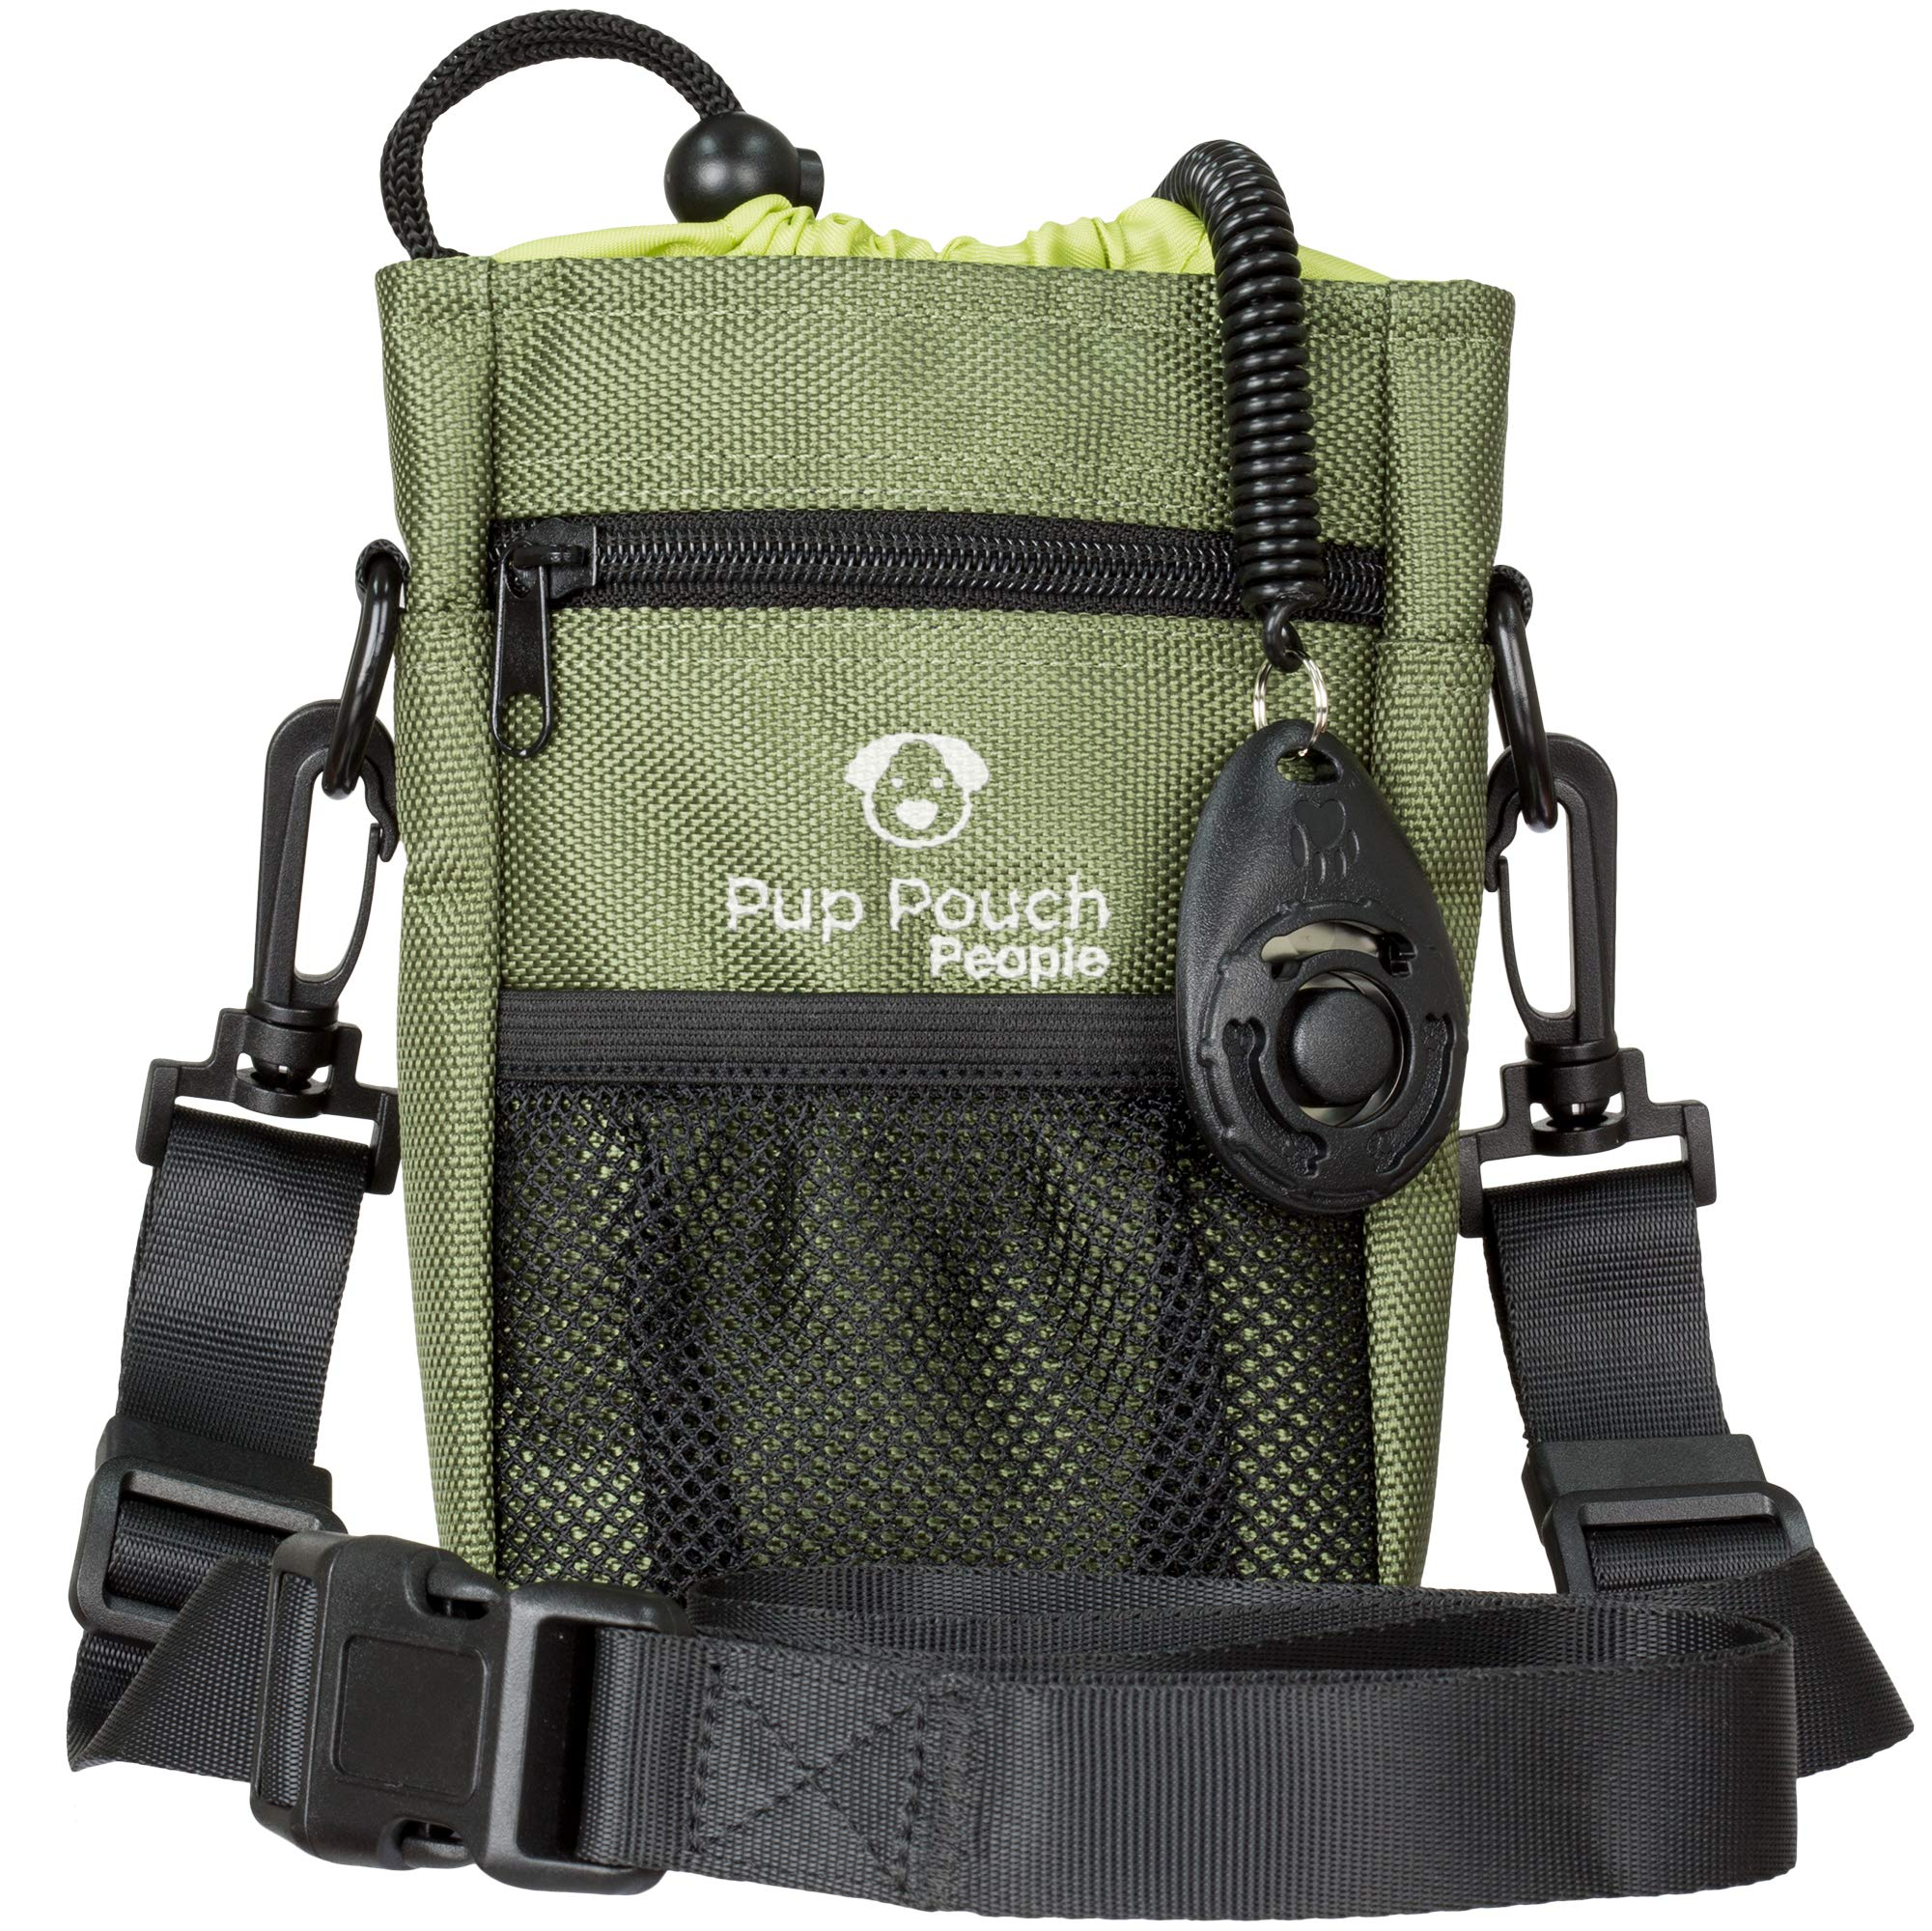 Dog Clicker Treat Walking Training Pouch Bag Bonus Clicker Trainer - Built-in Double Poop Bag Dispenser, Drawstring Closure - Carries Balls, Toys, Treats - 3 Ways to Wear - Olive Green